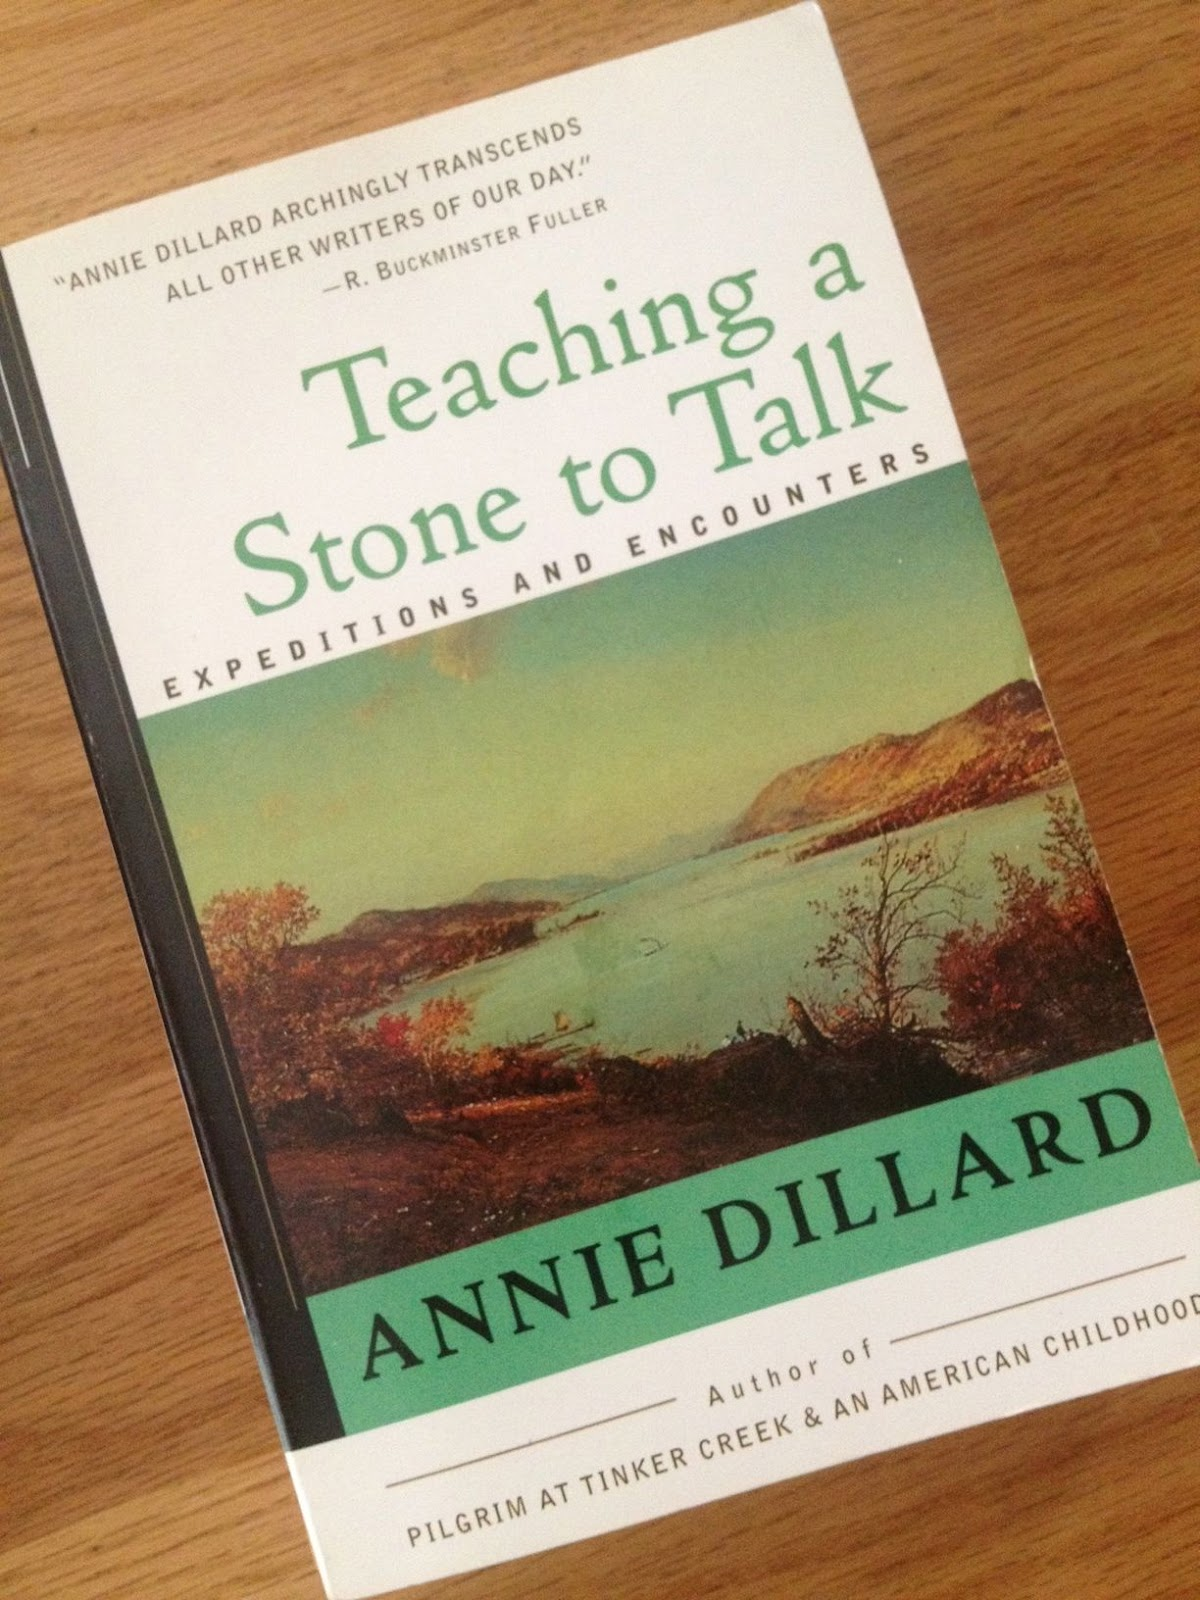 annie dillard essays teaching a stone to talk Teaching a stone to talk by annie dillard on studybaycom - biographical information about the author could, online marketplace for students.